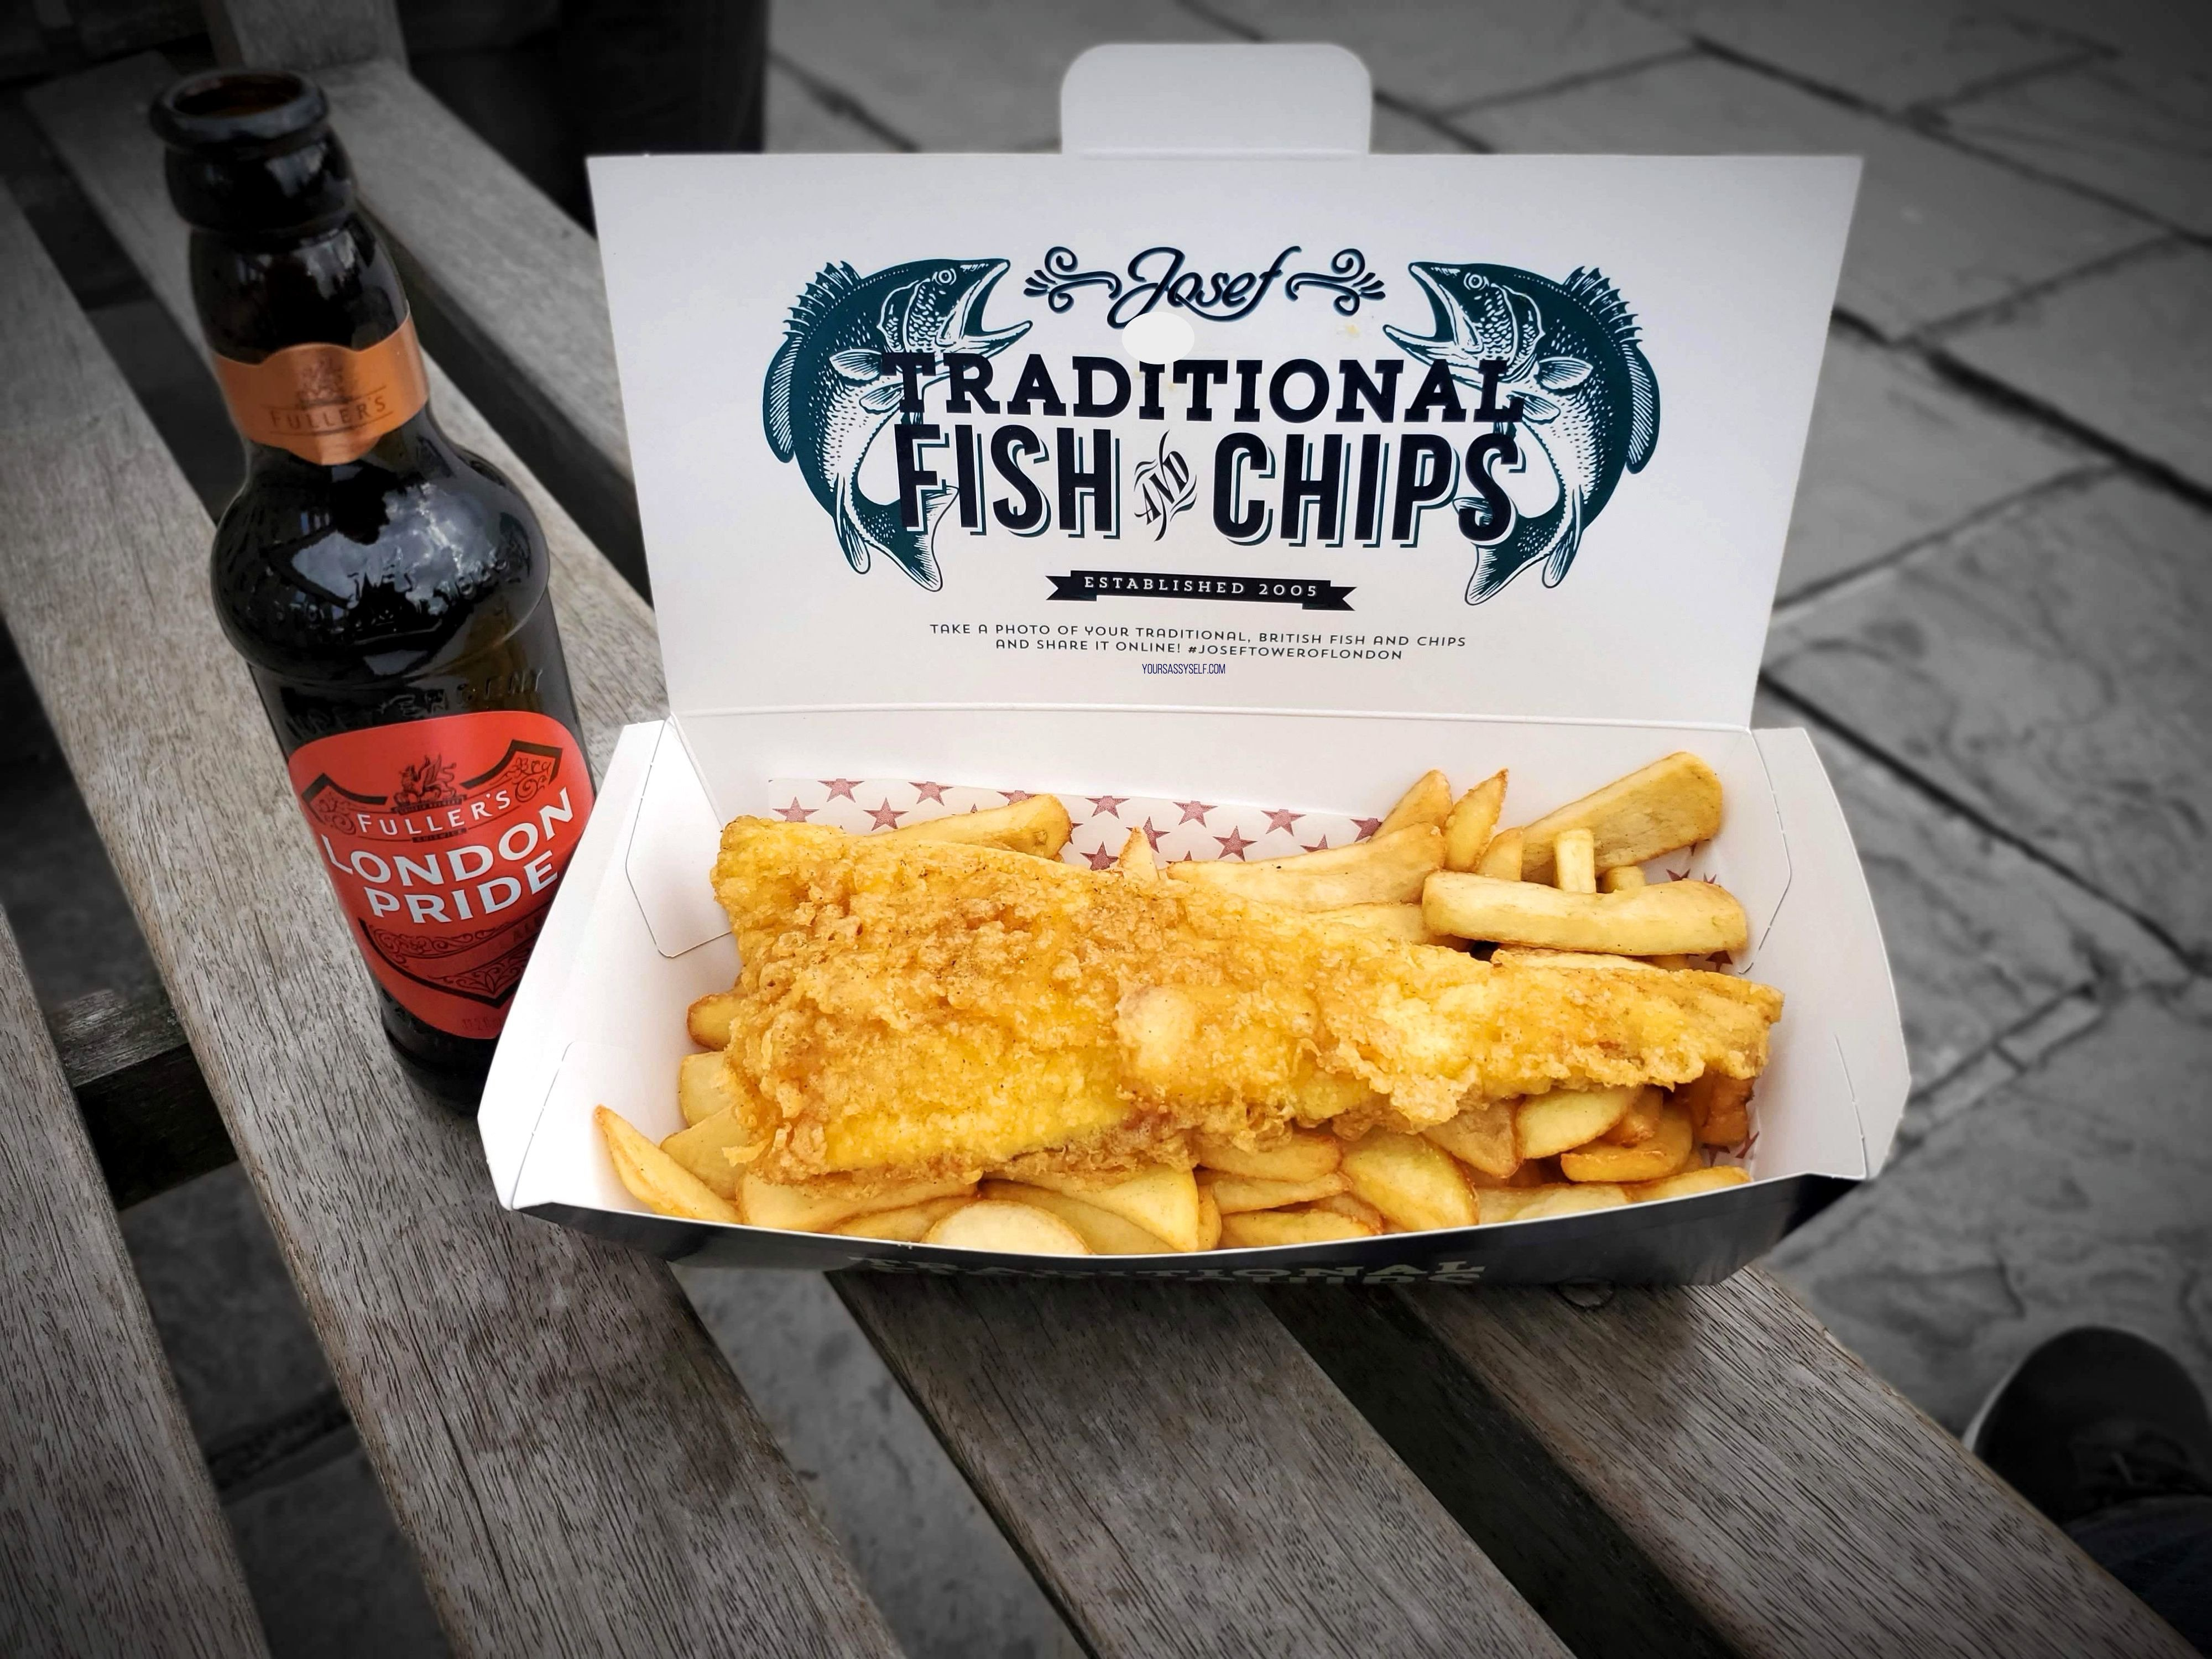 Beer, Fish and Chips - yoursassyself.com